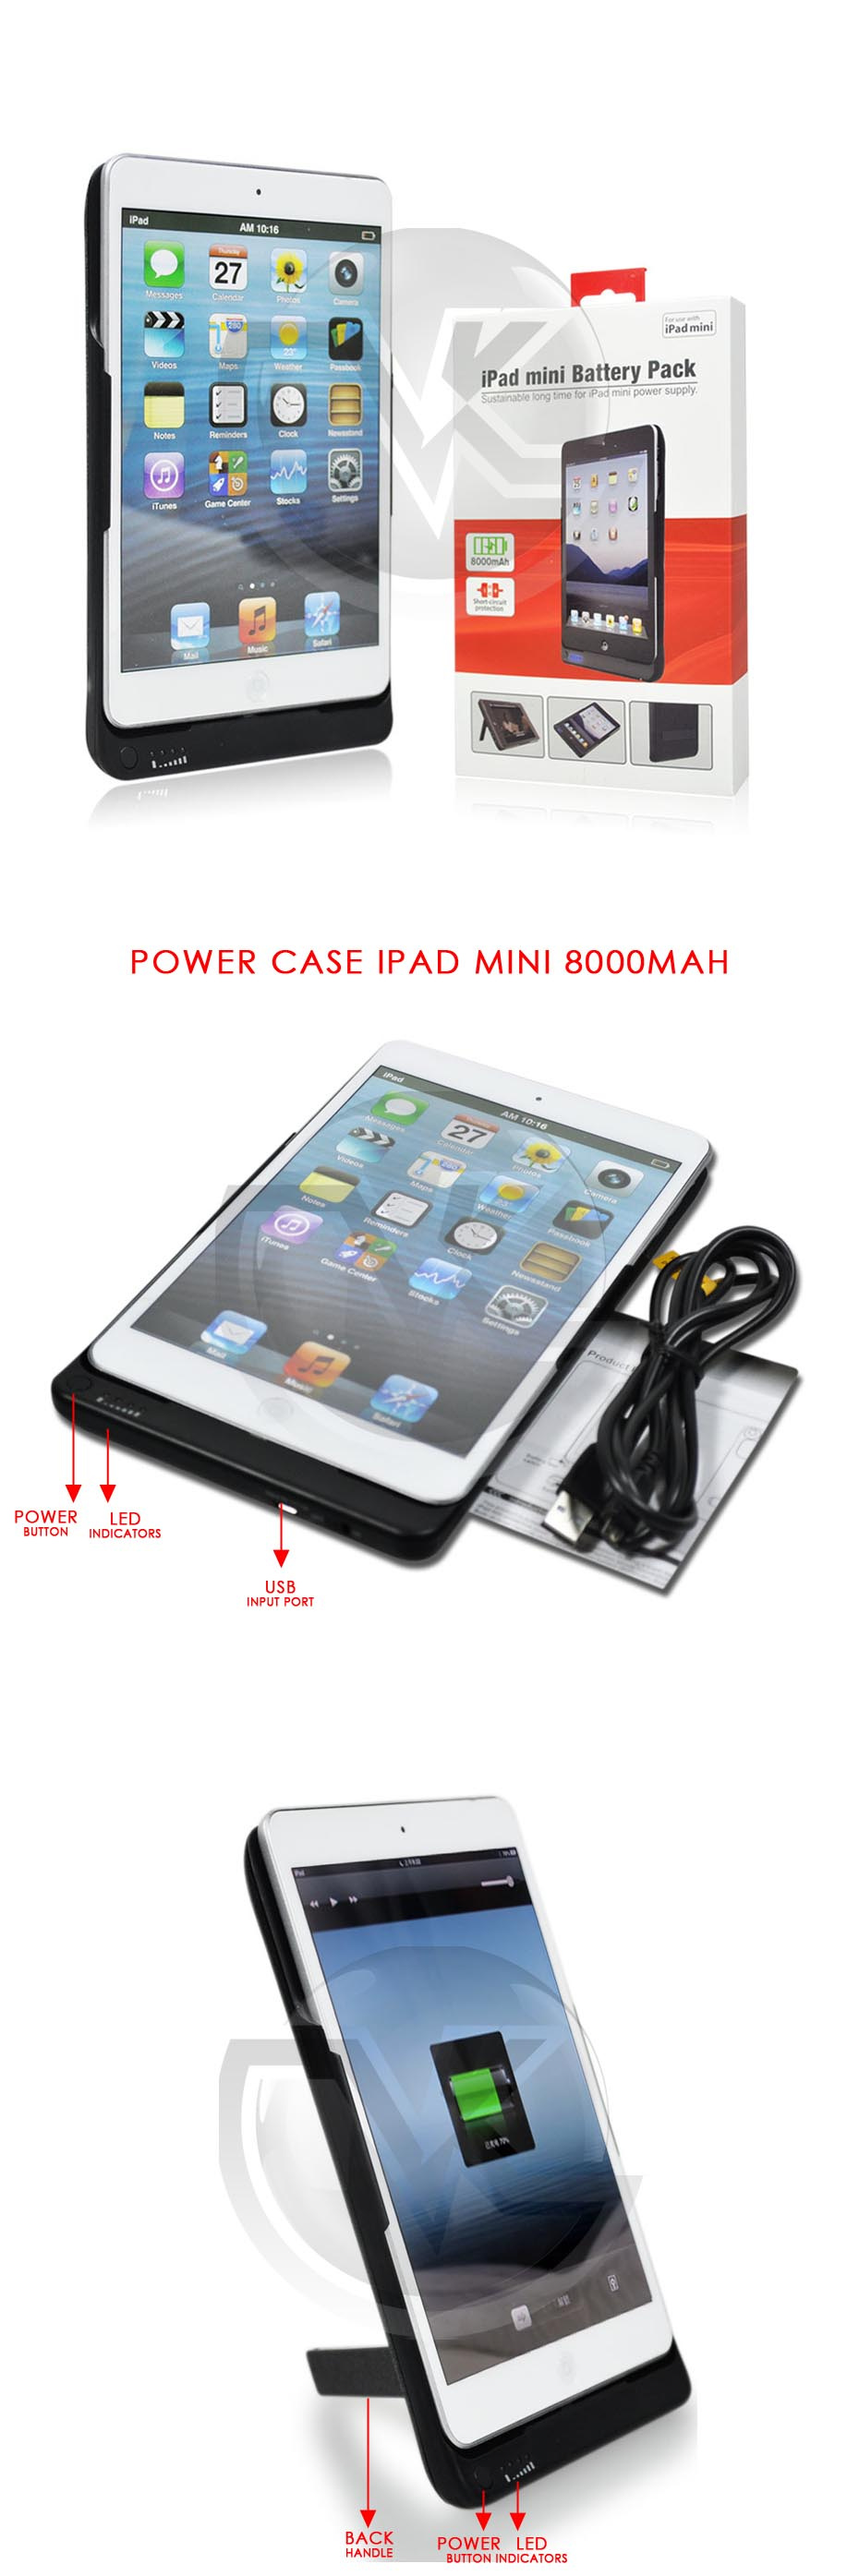 iPega Power Case for iPad Mini 8000mAh PG-IPM019 Overview